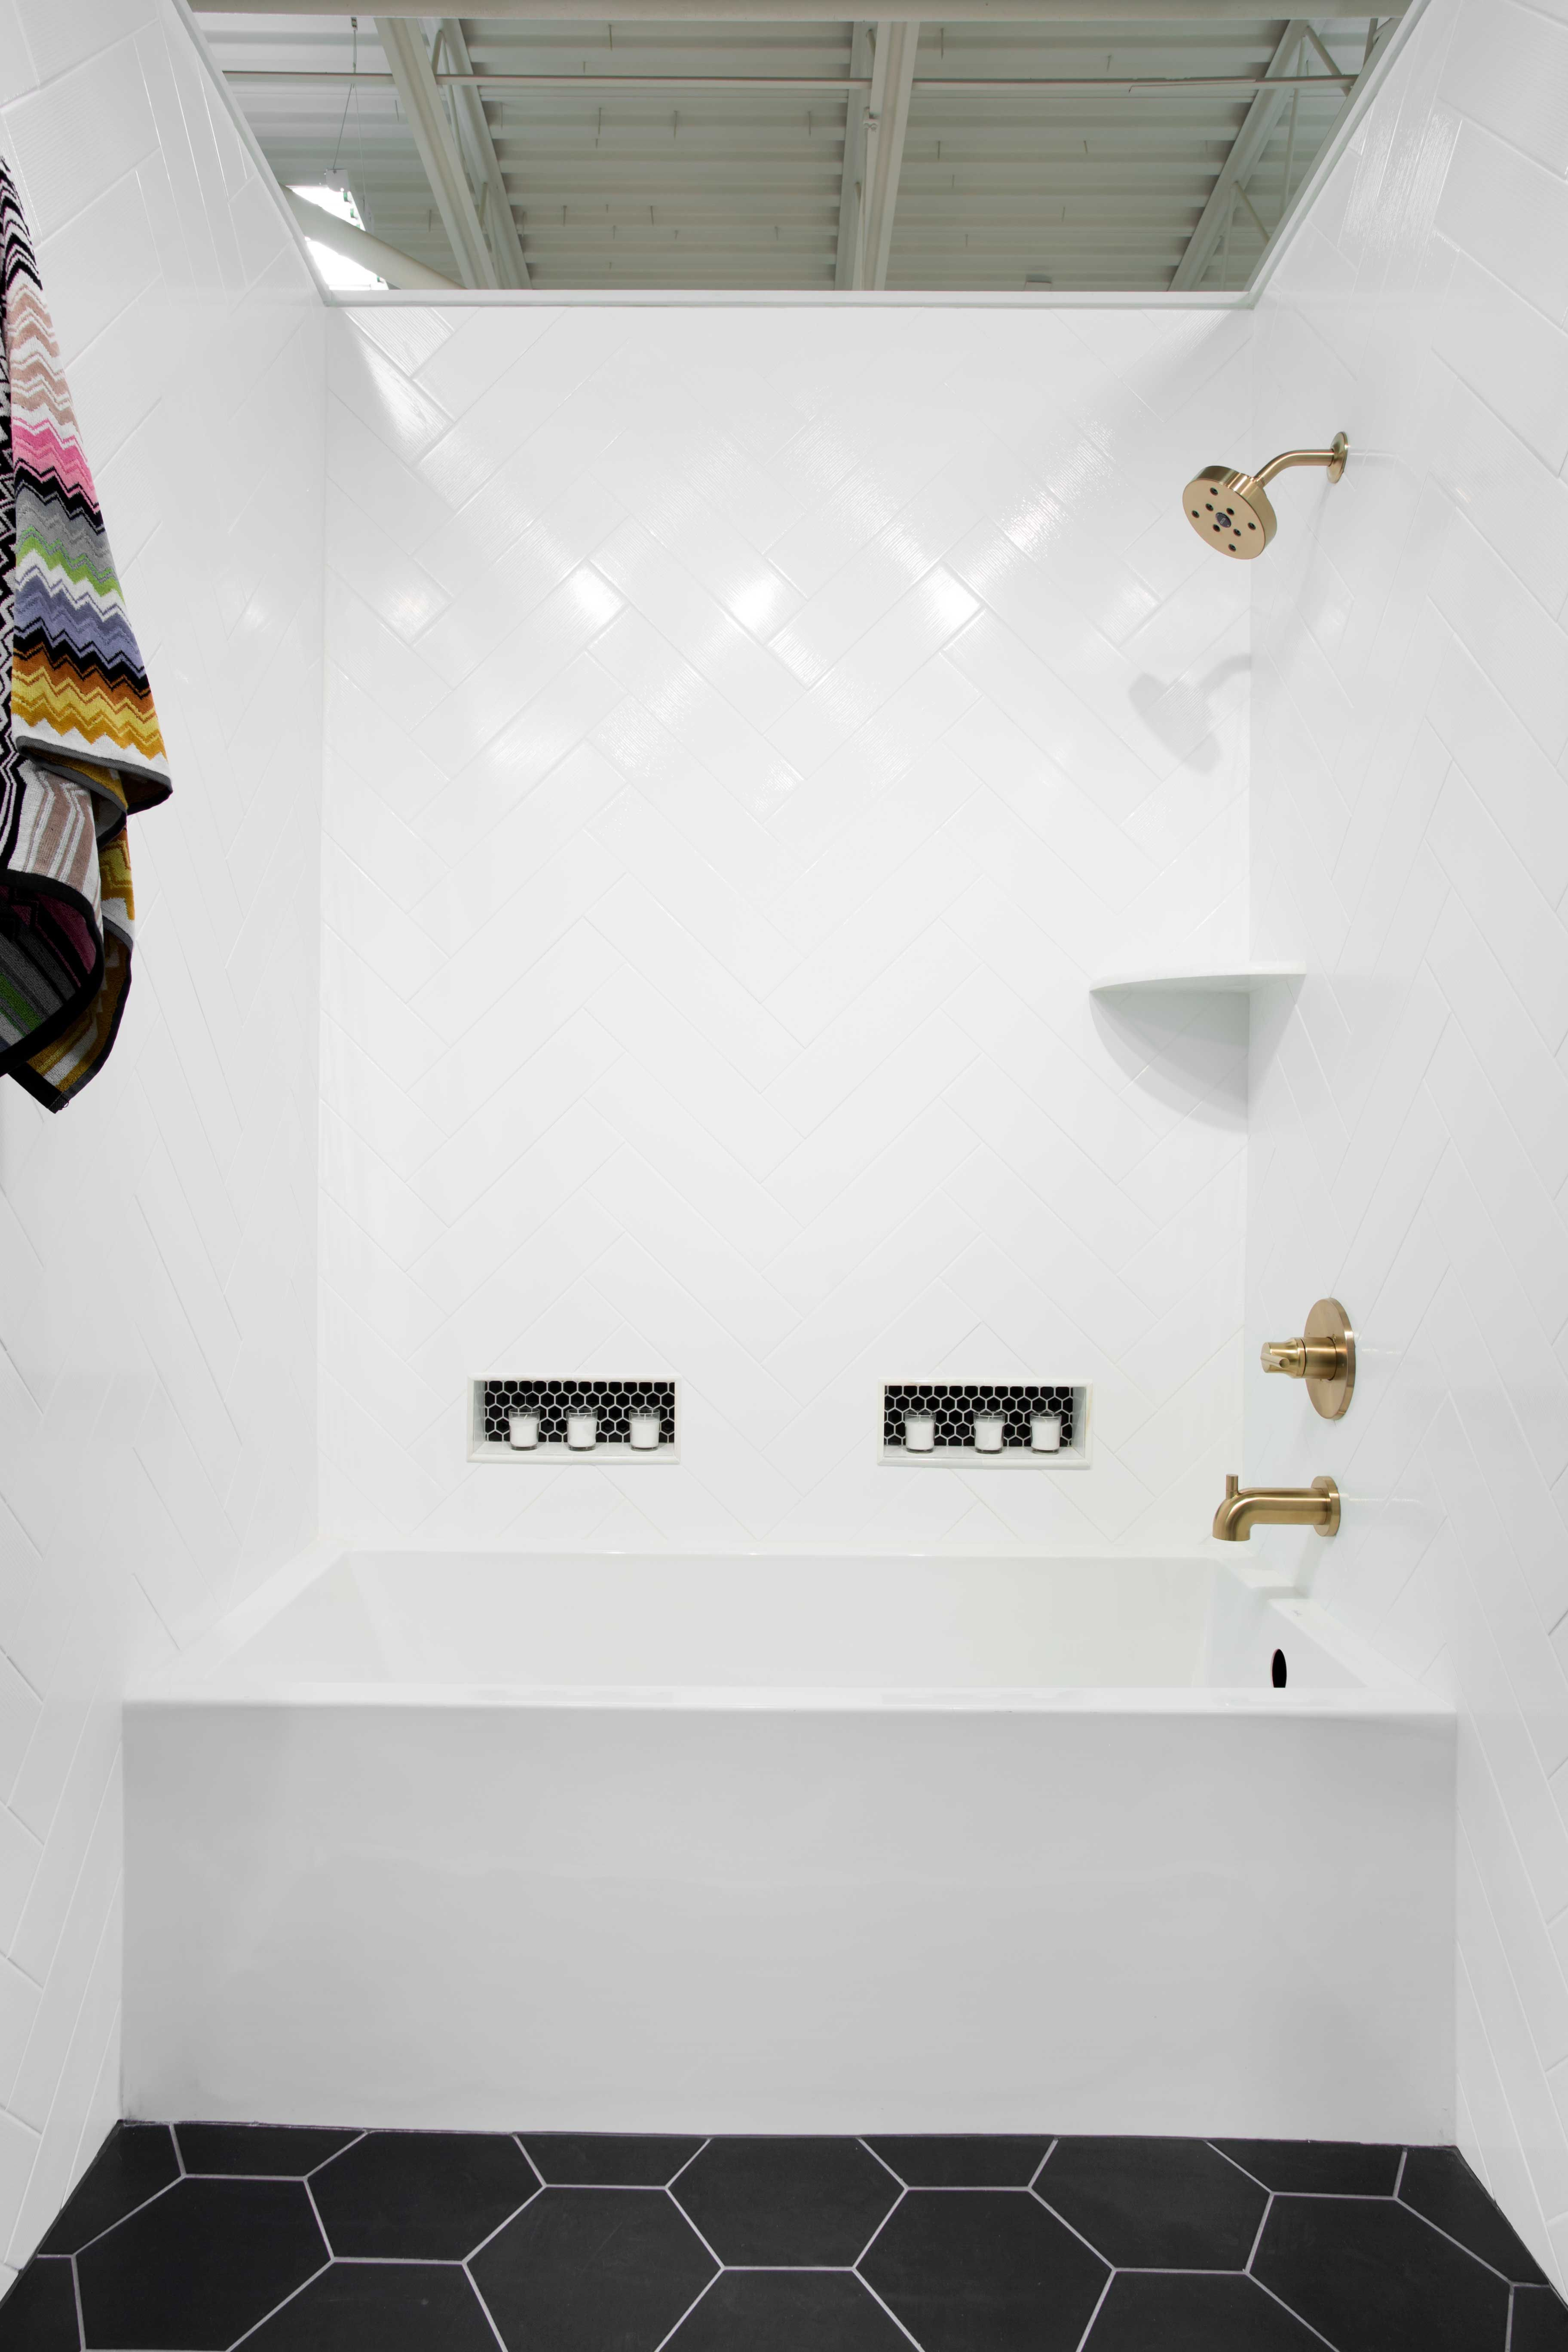 White bathroom wall tile - Icefall White Ceramic Wall Tile 4 x 16 in ...